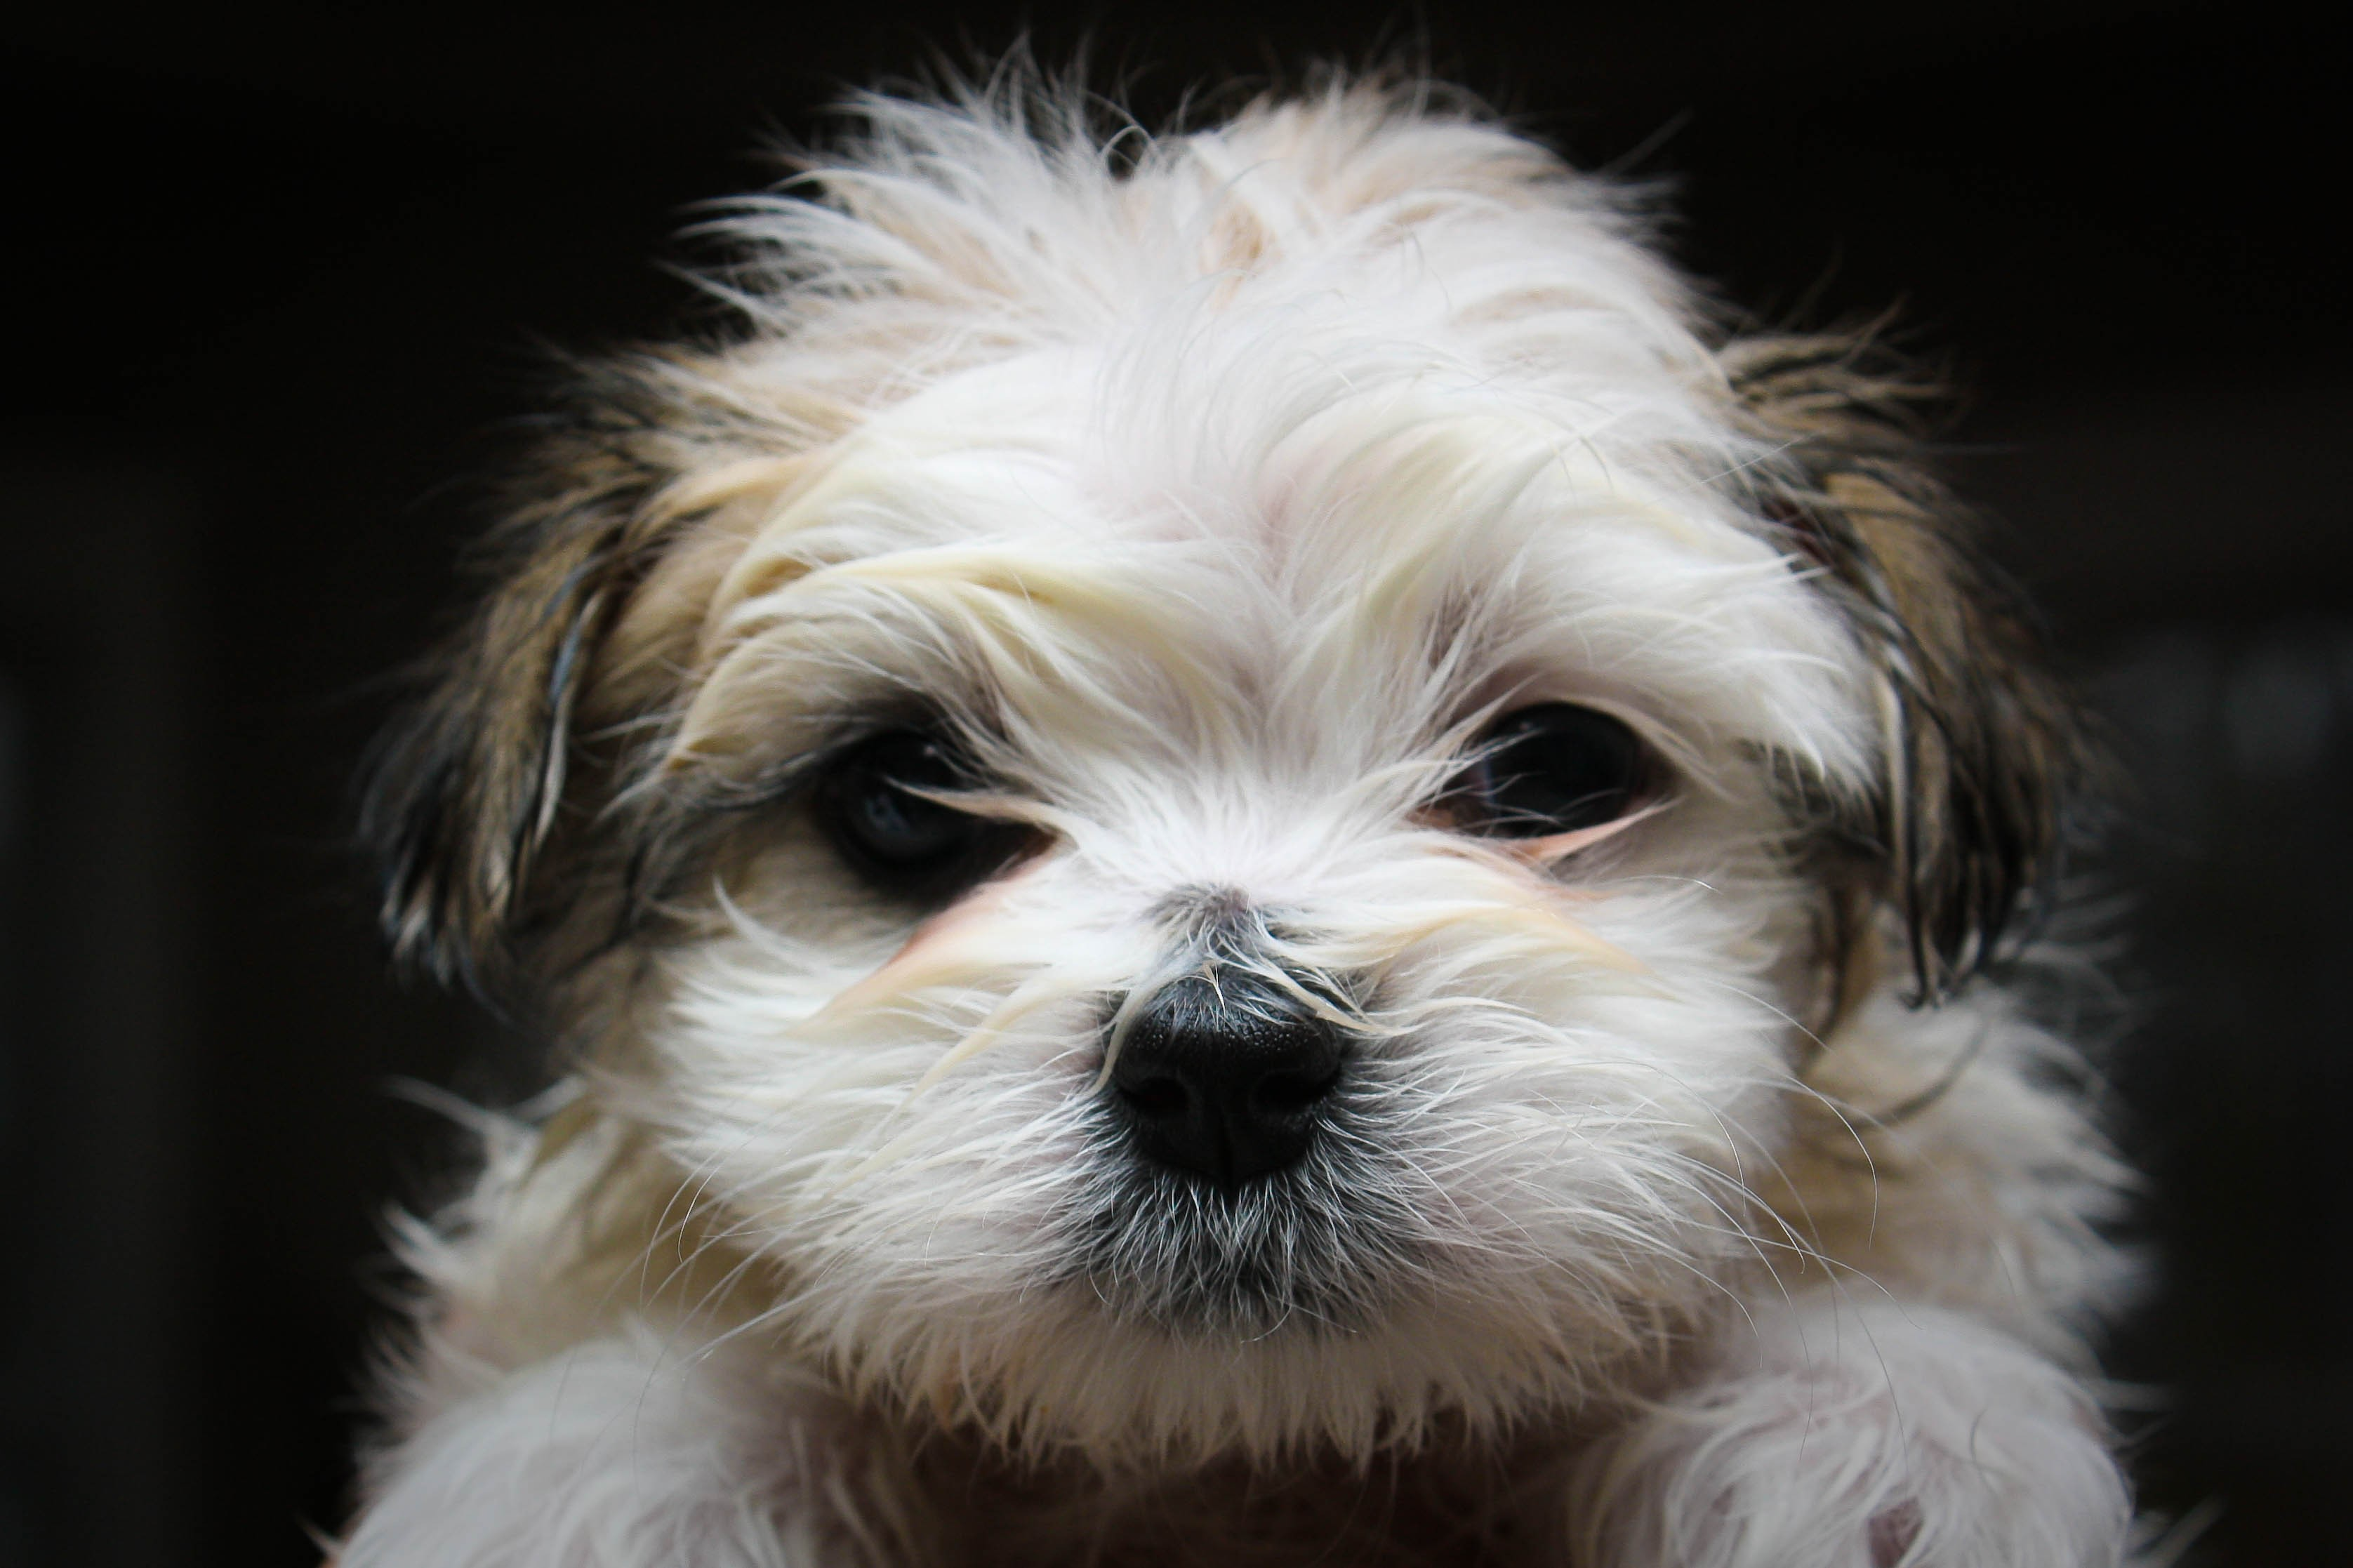 A Maltese Shitzu mix can come from a purebred Maltese and Shitzu or purebred Mal-Tzu parents